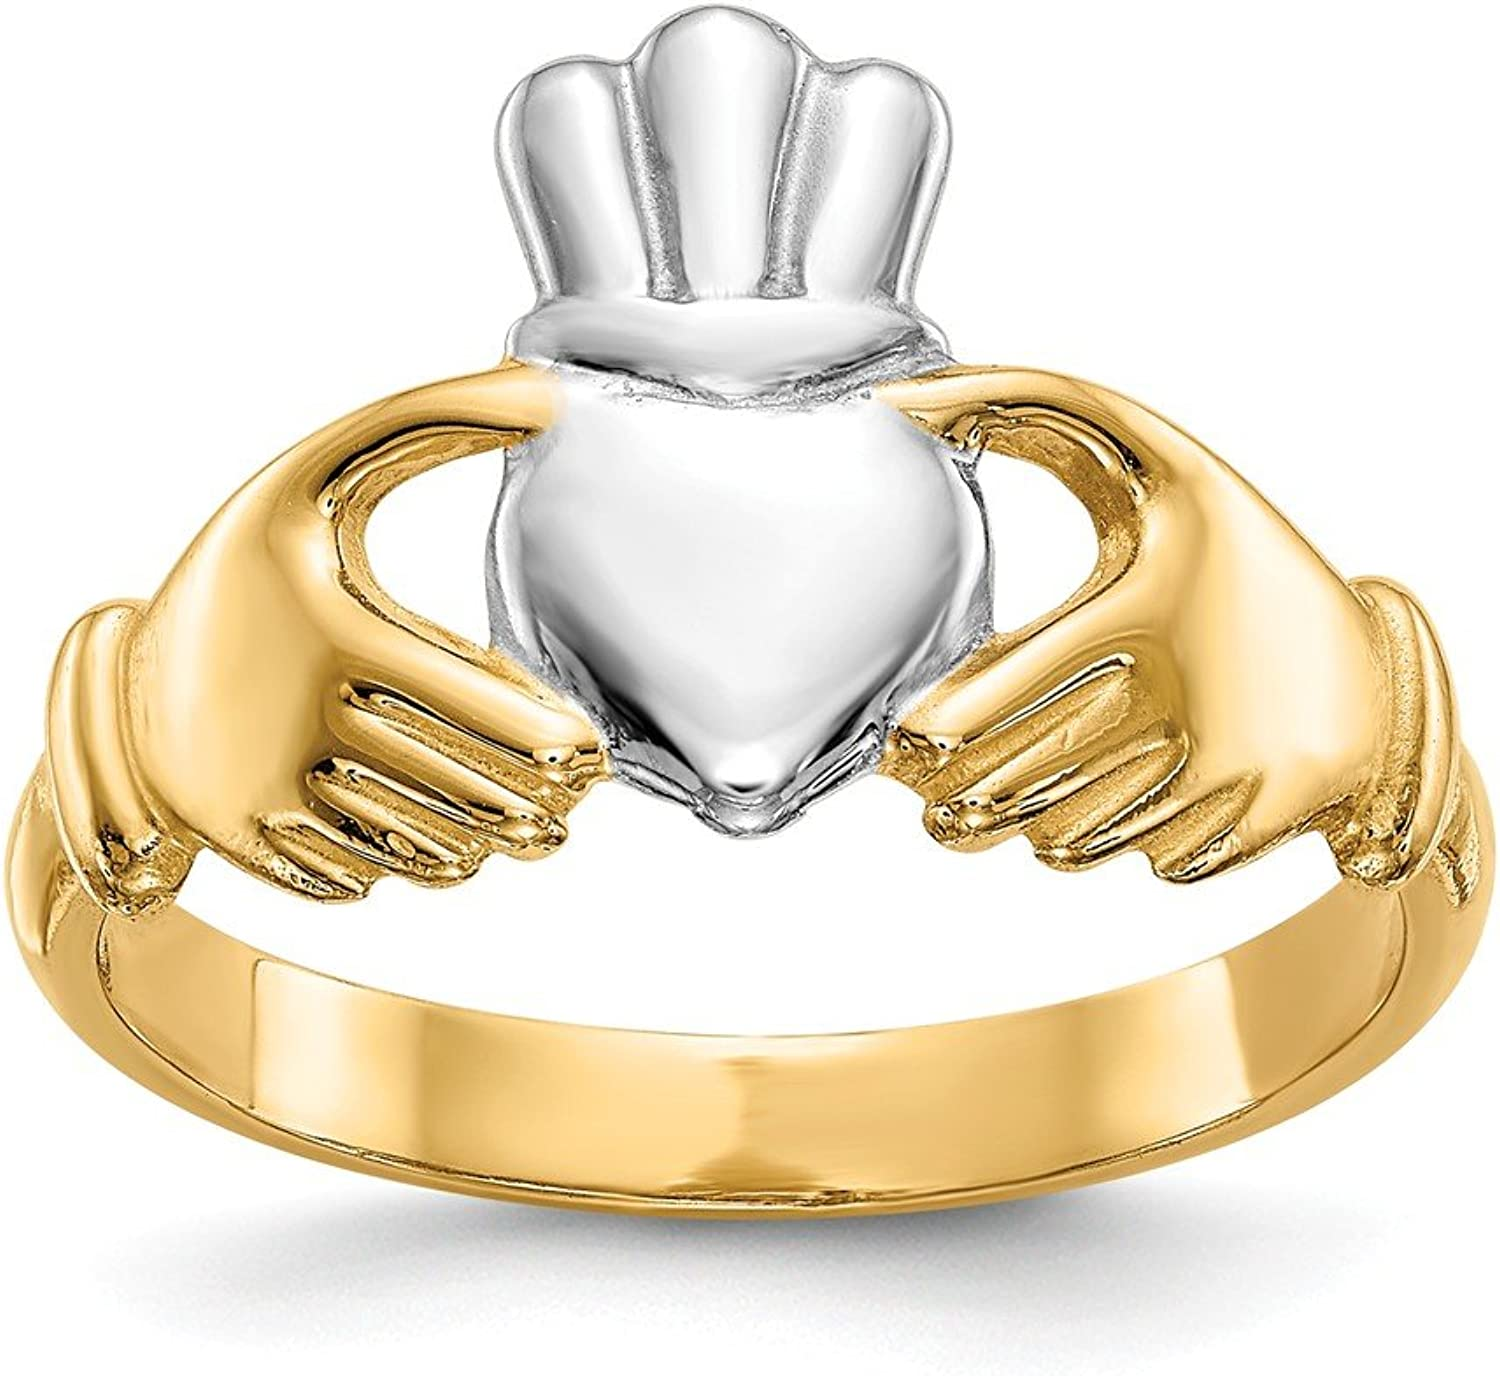 Beautiful rhodium plated gold and silver 14K rhodiumplatedgoldandsilver 14k Polished & Rhodium Claddagh Ring